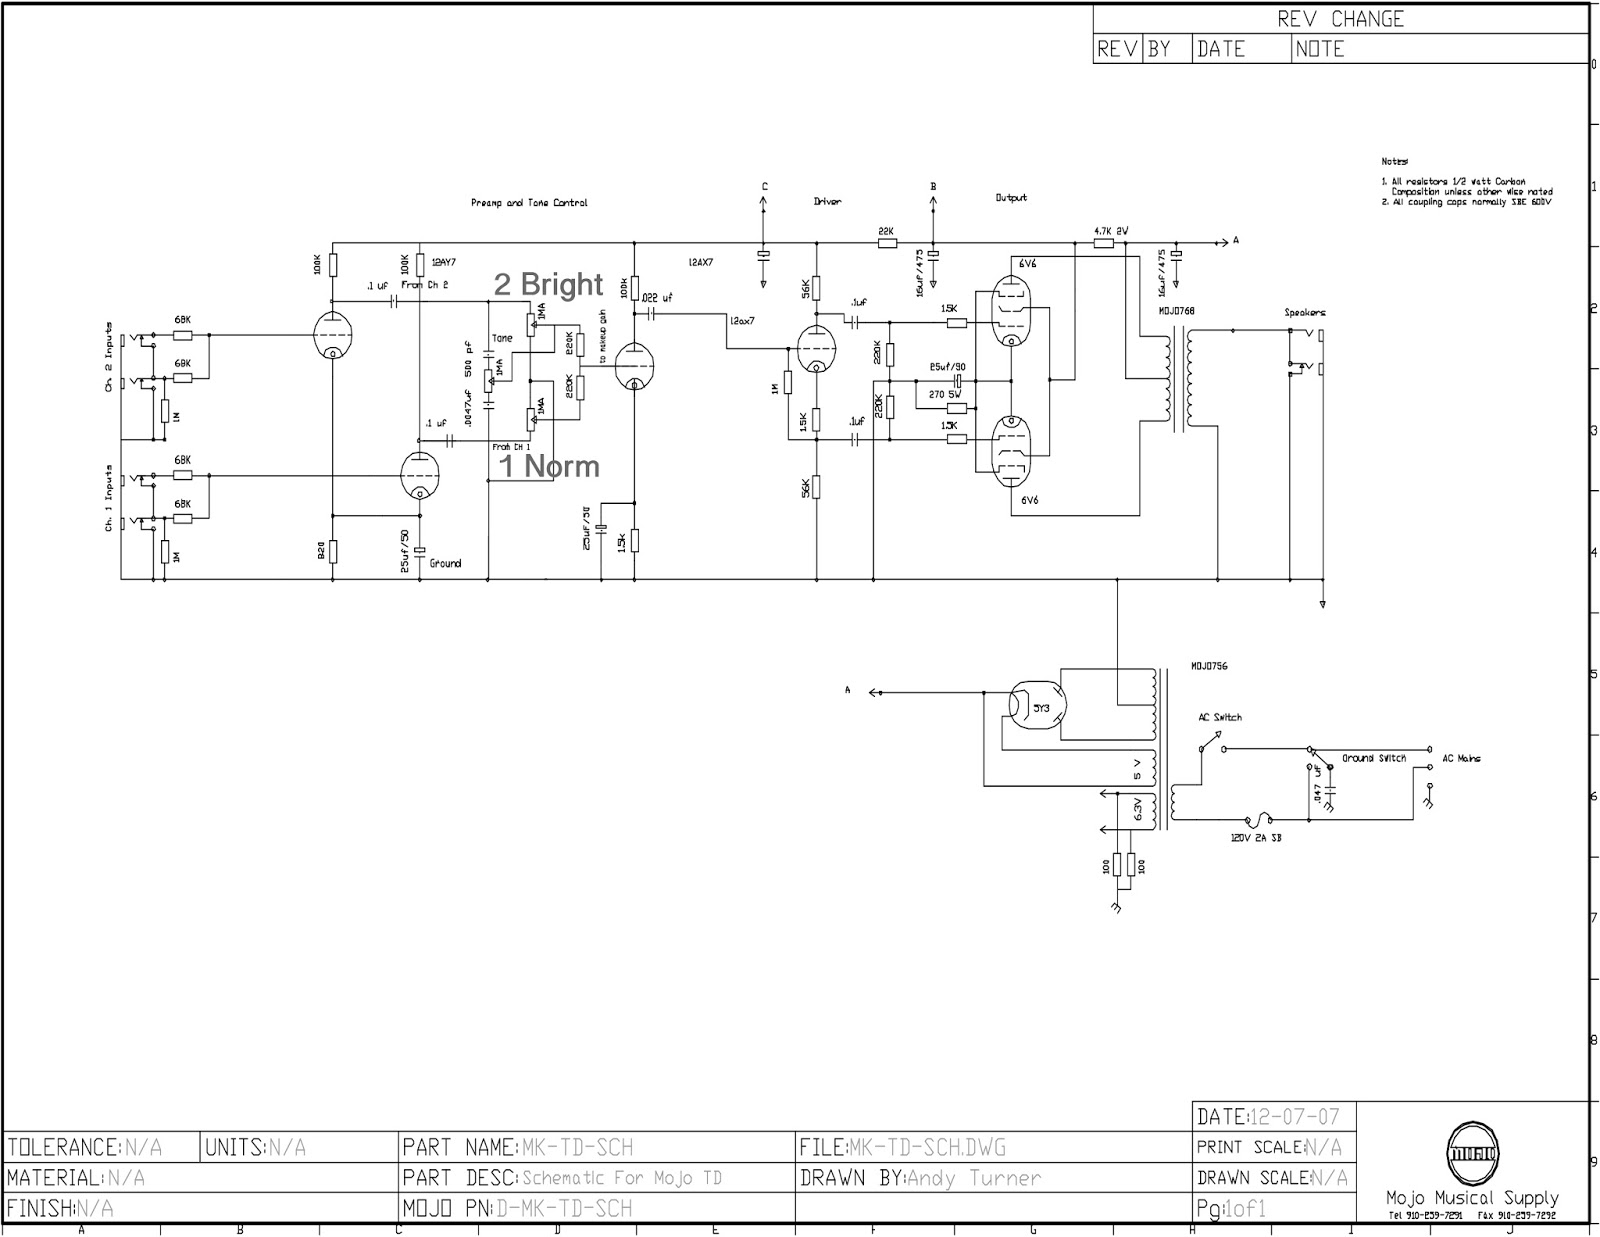 Forsbach Productions: Building and Modifying MojoTone 5E3 Deluxe on silver tone 1472 amp schematic, princeton reverb schematic, boss ce 5 schematic, supro schematic, guitar amp circuit board schematic, 5f1 schematic, fender excelsior schematic, vox ac15 schematic, 5c1 schematic, fender deluxe schematic, cry baby foot pedal schematic, 100 watt marshall schematic, fender m 80 schematic, klon schematic, deluxe 6g3 schematic,